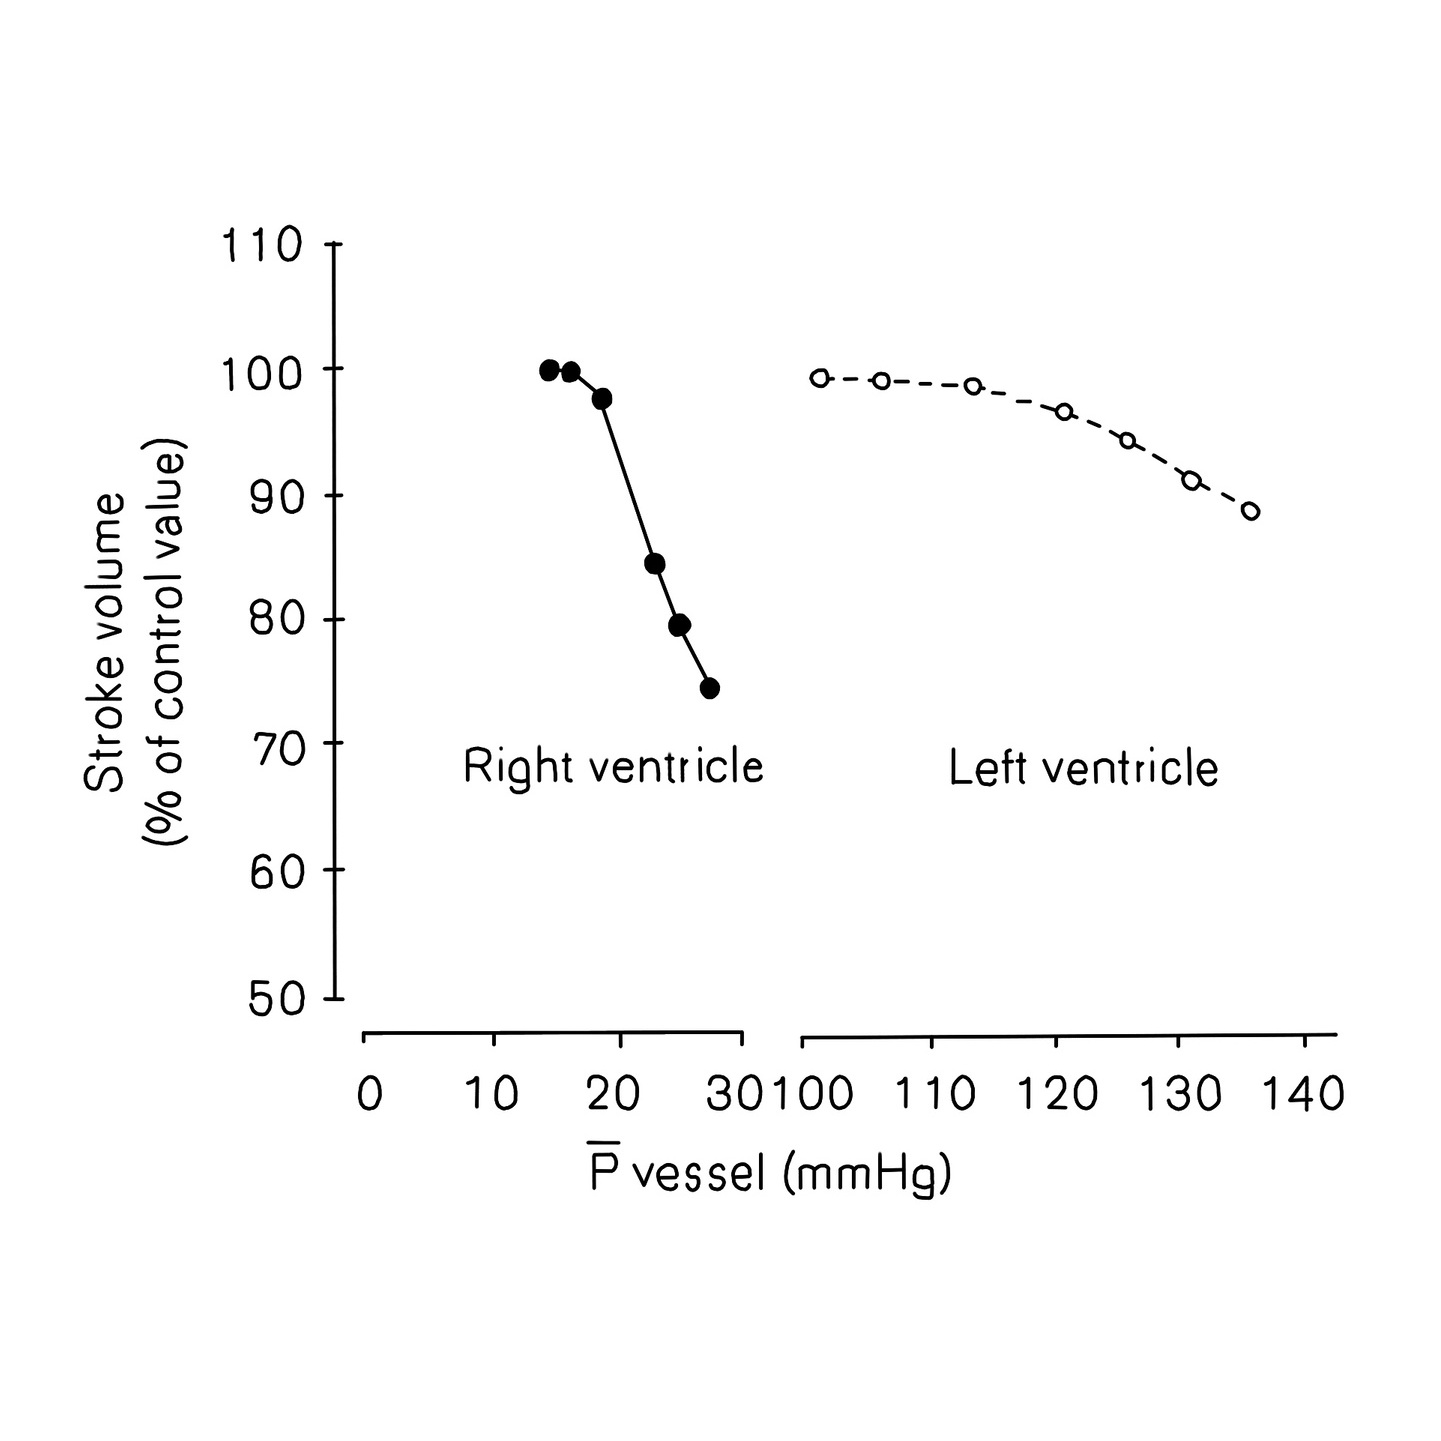 Figure 1: A graph depicting the effect of arterial pressures on right and left ventricular stroke volumes. Adapted from Matthews et al [2]